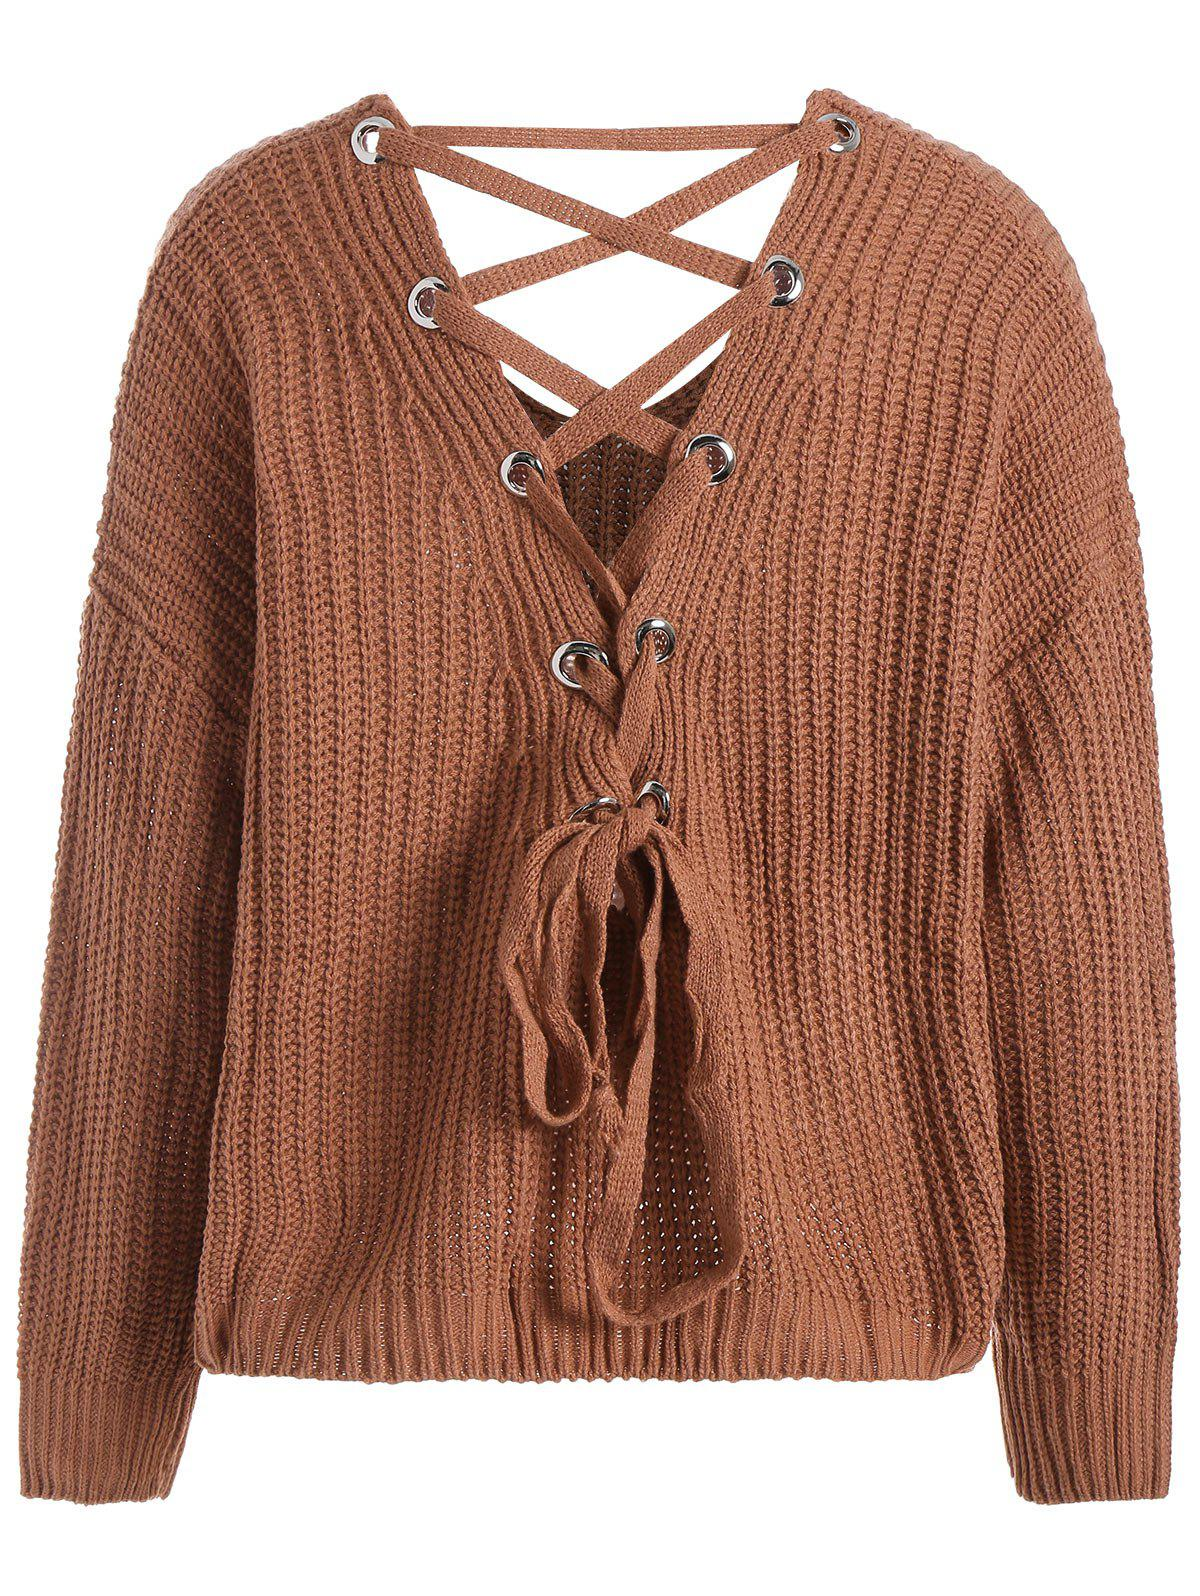 2017 Lace Up Drop Shoulder Plus Size Sweater LIGHT BROWN ONE SIZE ...